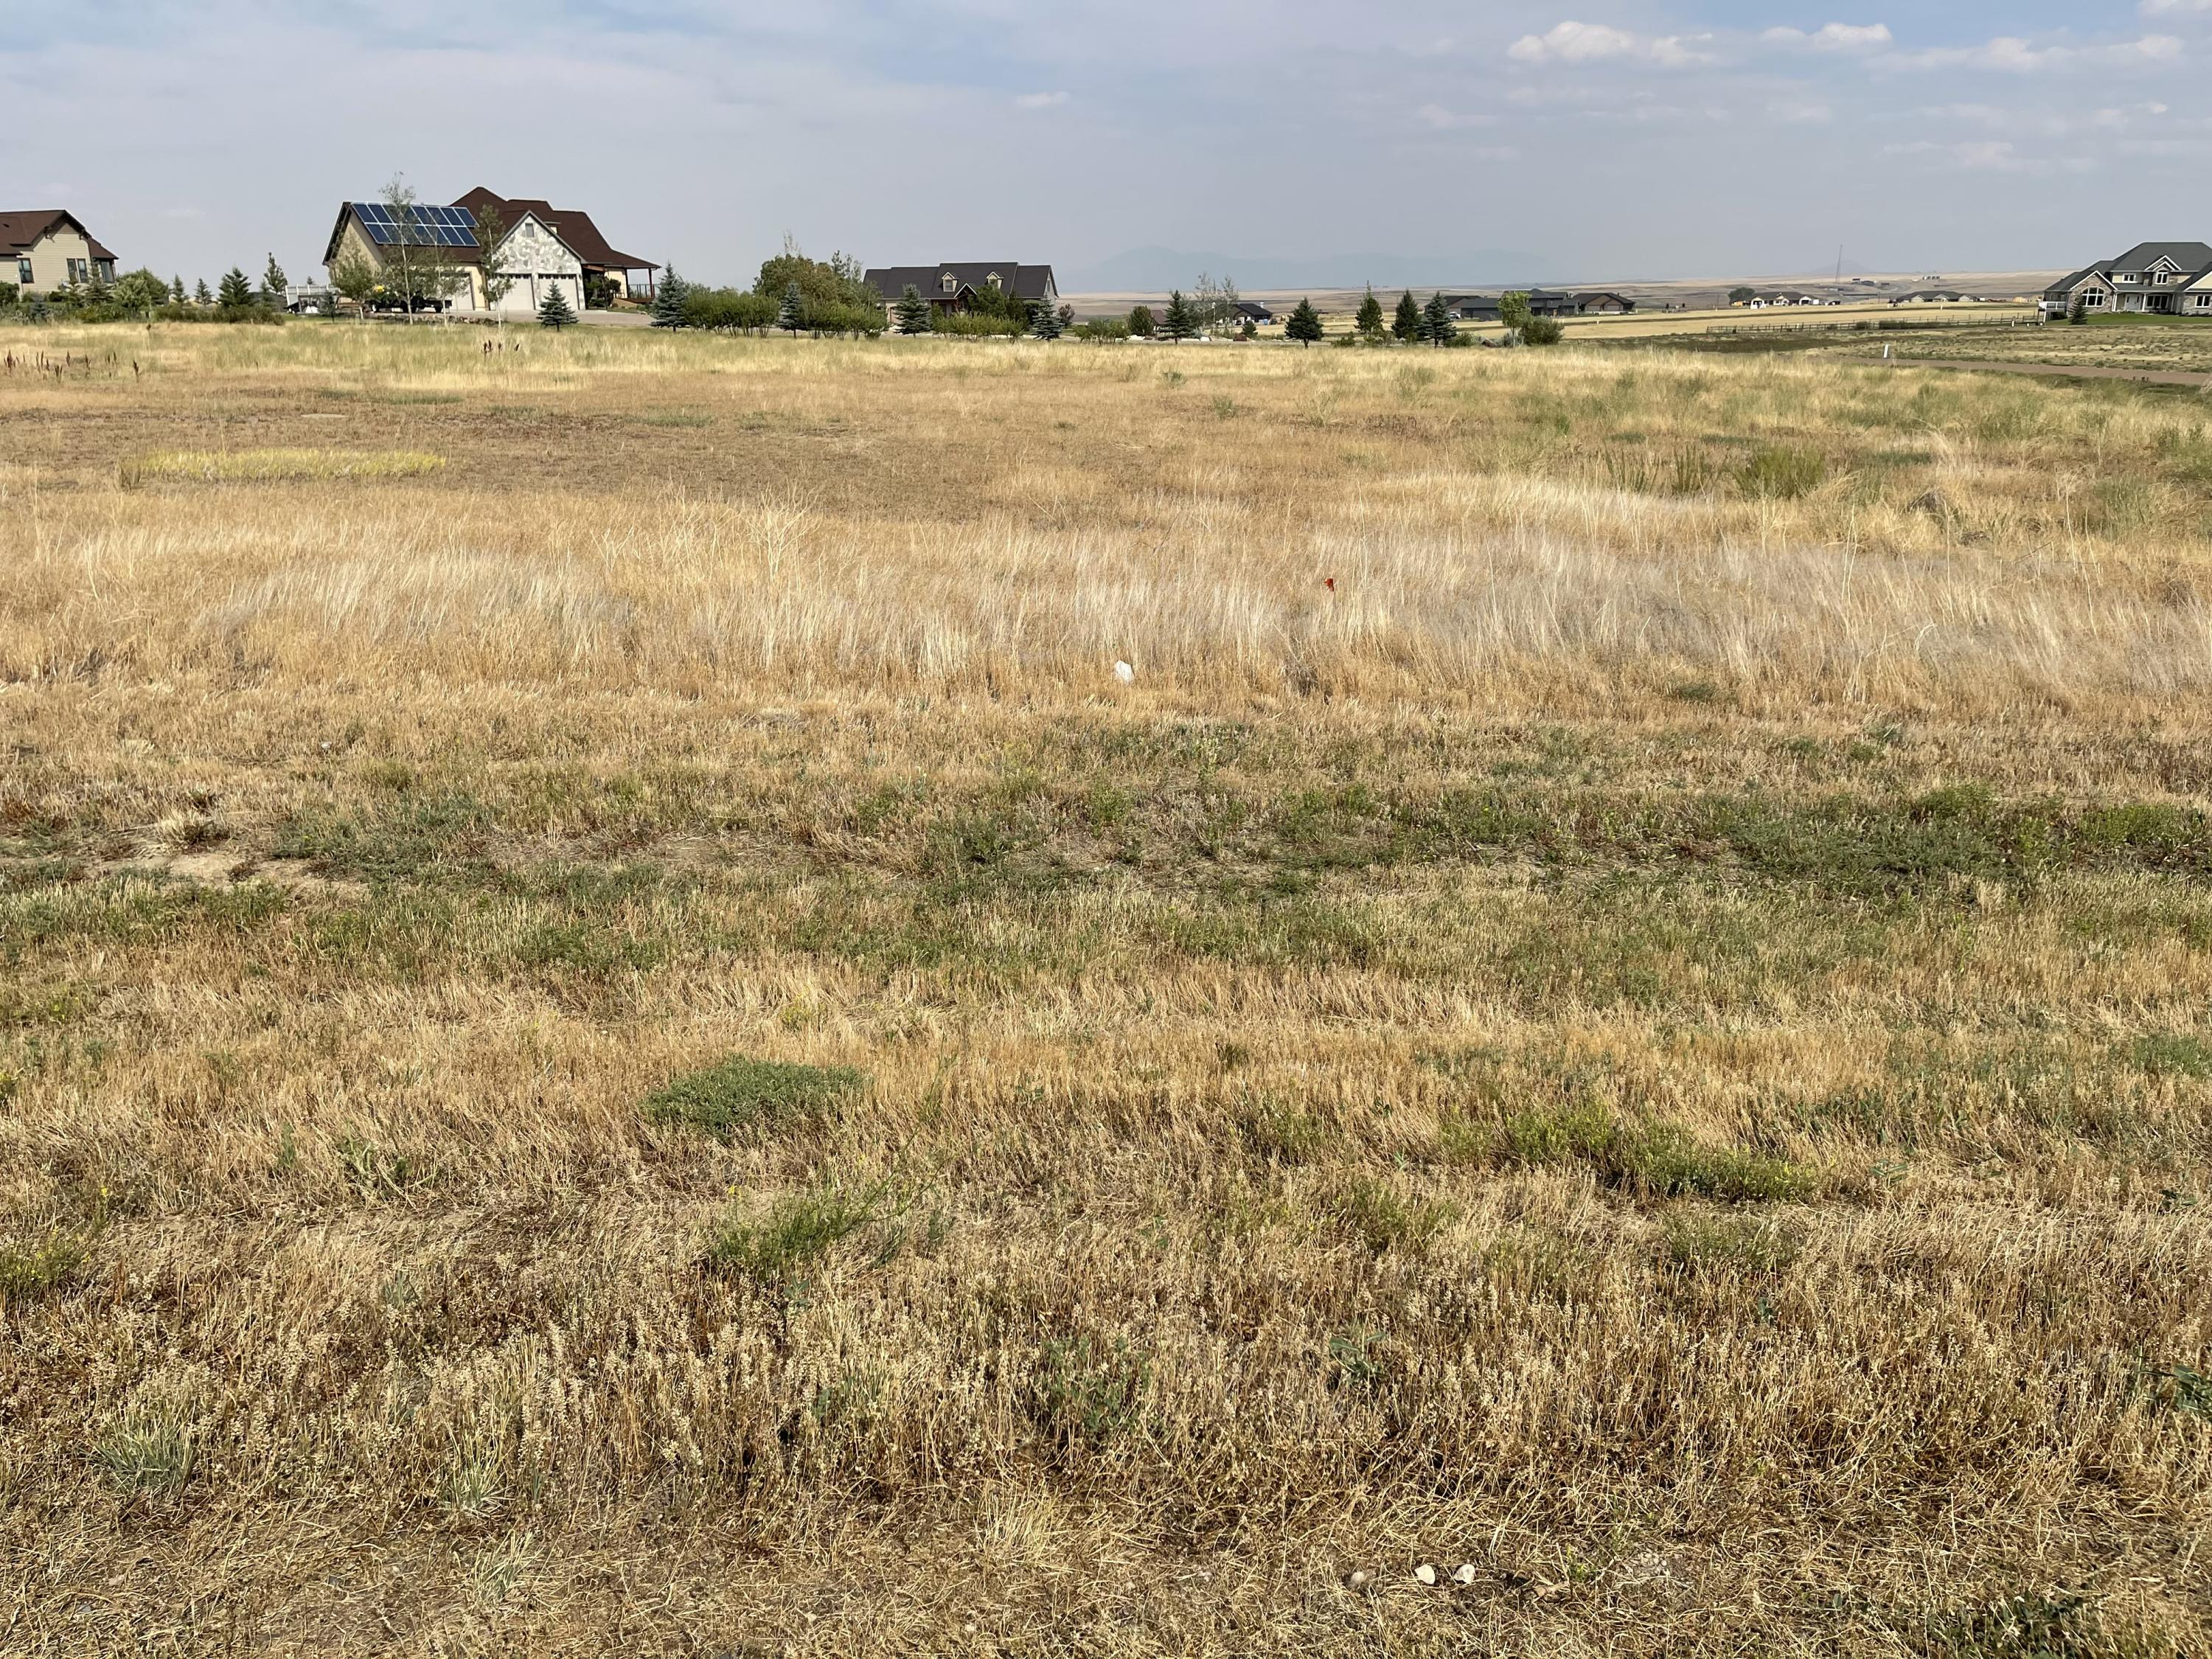 VIEWS VIEWS VIEWS from this primo lot located in the Foothills subdivision! Build your dream home on this 2.647 acres just outside of town WITH A WELL!  There are views of the HIghwoods and the little belts from the lot! Listed by Melissa Dascoulias.